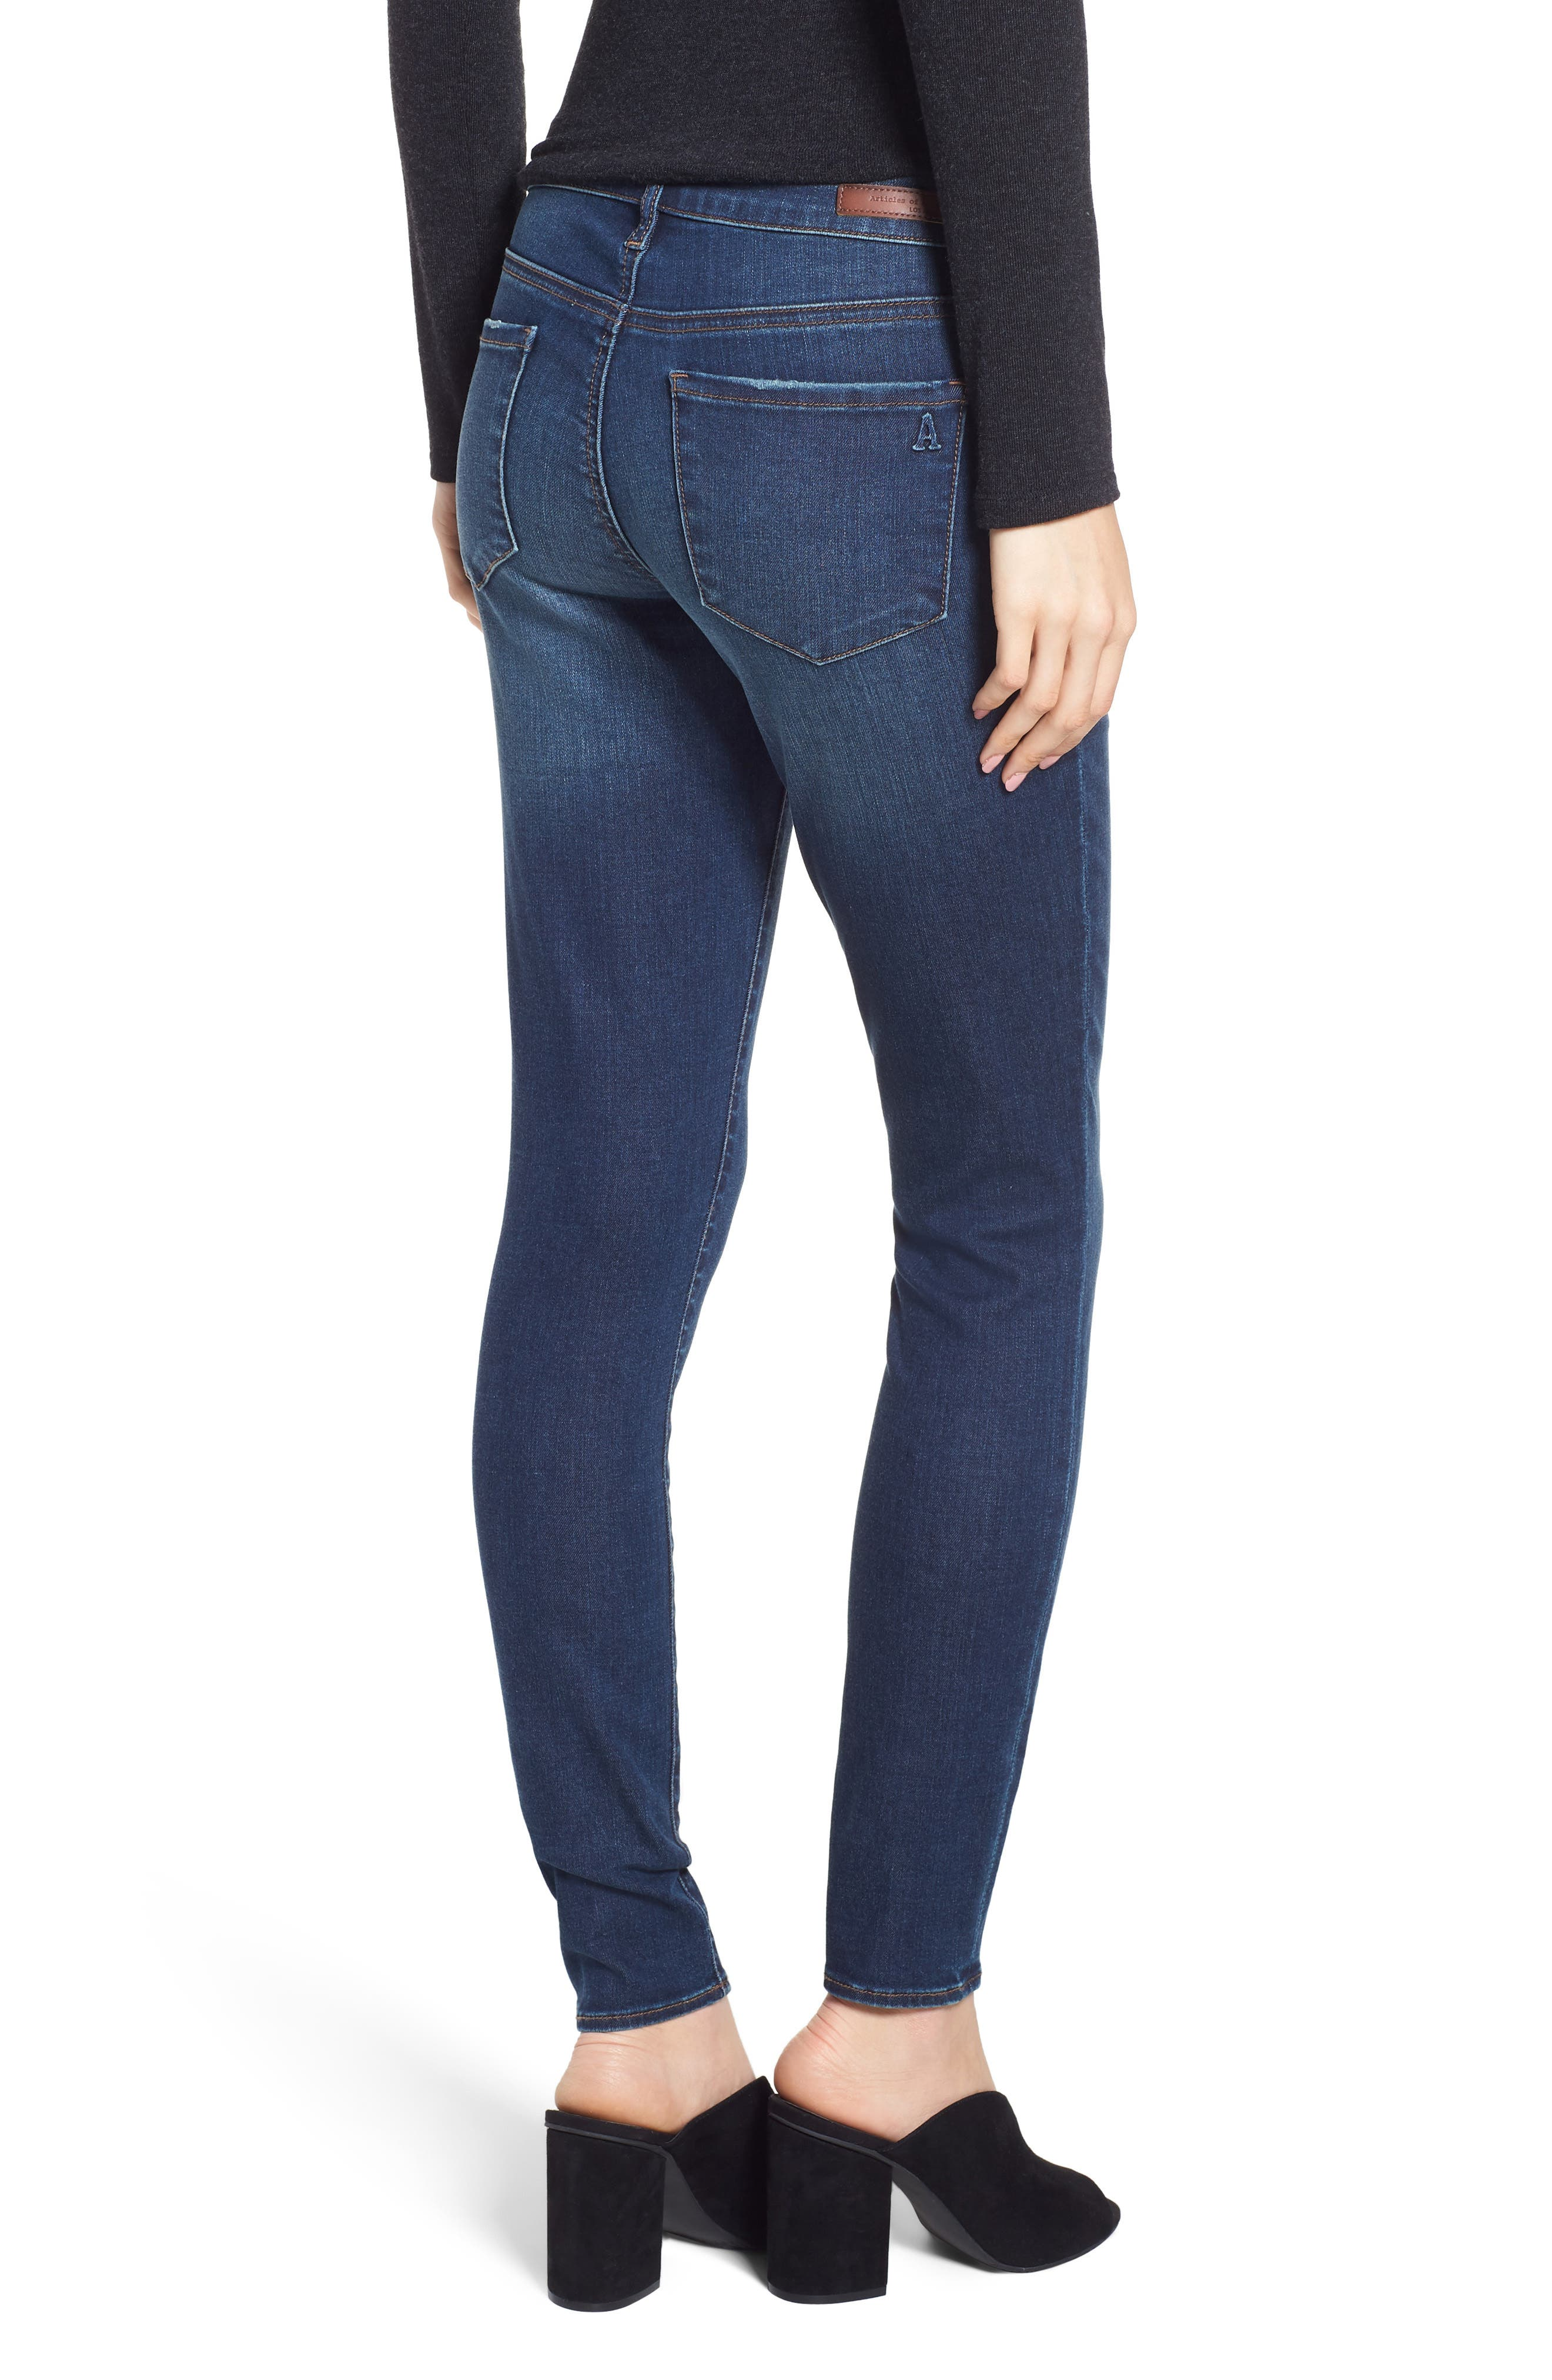 ARTICLES OF SOCIETY, Sarah Skinny Jeans, Alternate thumbnail 2, color, 400